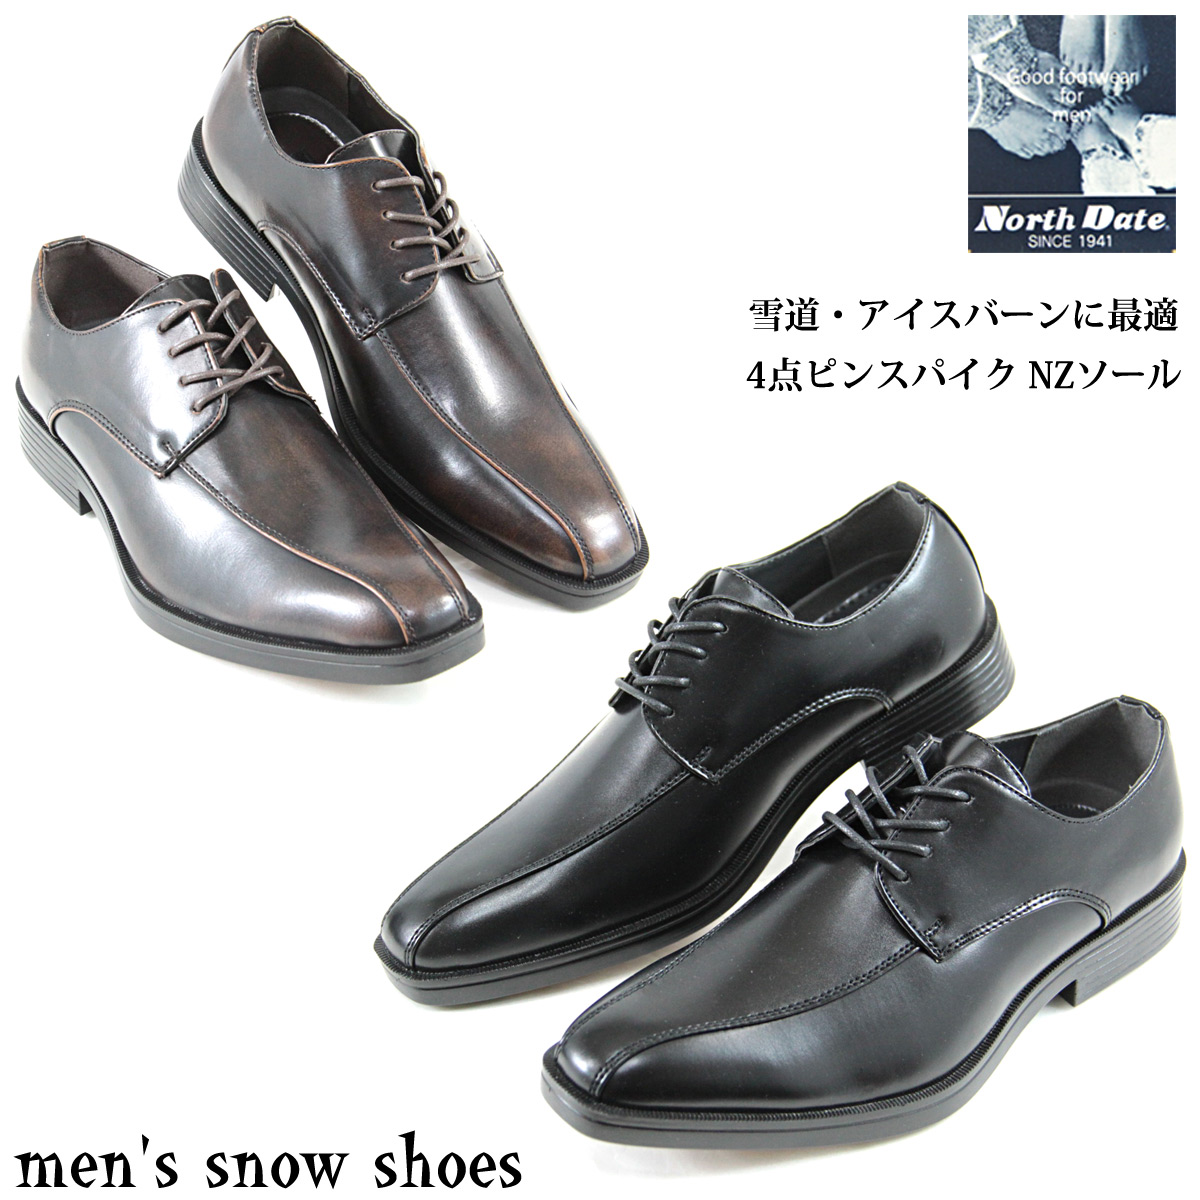 9204b041adf Mens shoes-103 - North date gentlemen shoes business shoes steel spike with  winter anti-slip system bacteria deodorant wide 4E black